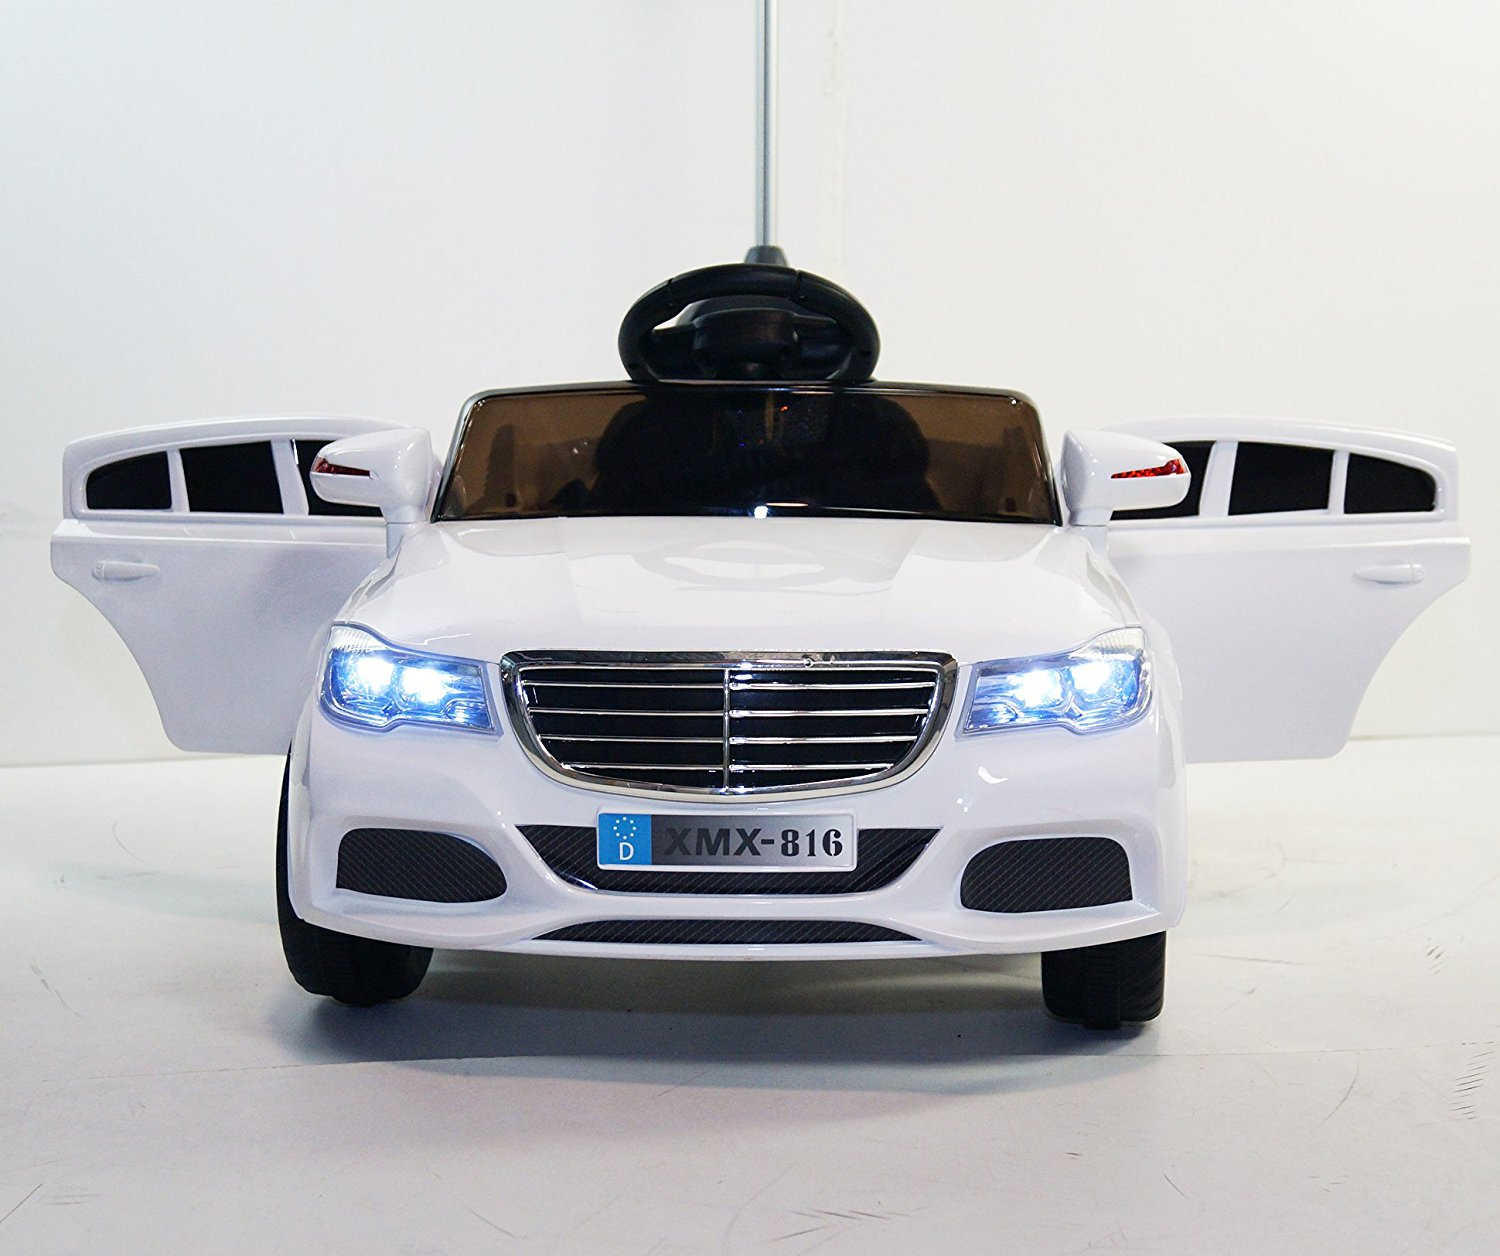 Ride on car MERCEDES style. Ride-Ons for kids, boys and girls, from 2 to 5 years. Car on electric battery, total 12V. One Electric motor. 3 speeds. MP3. With remote control. R/C. Battery operated.